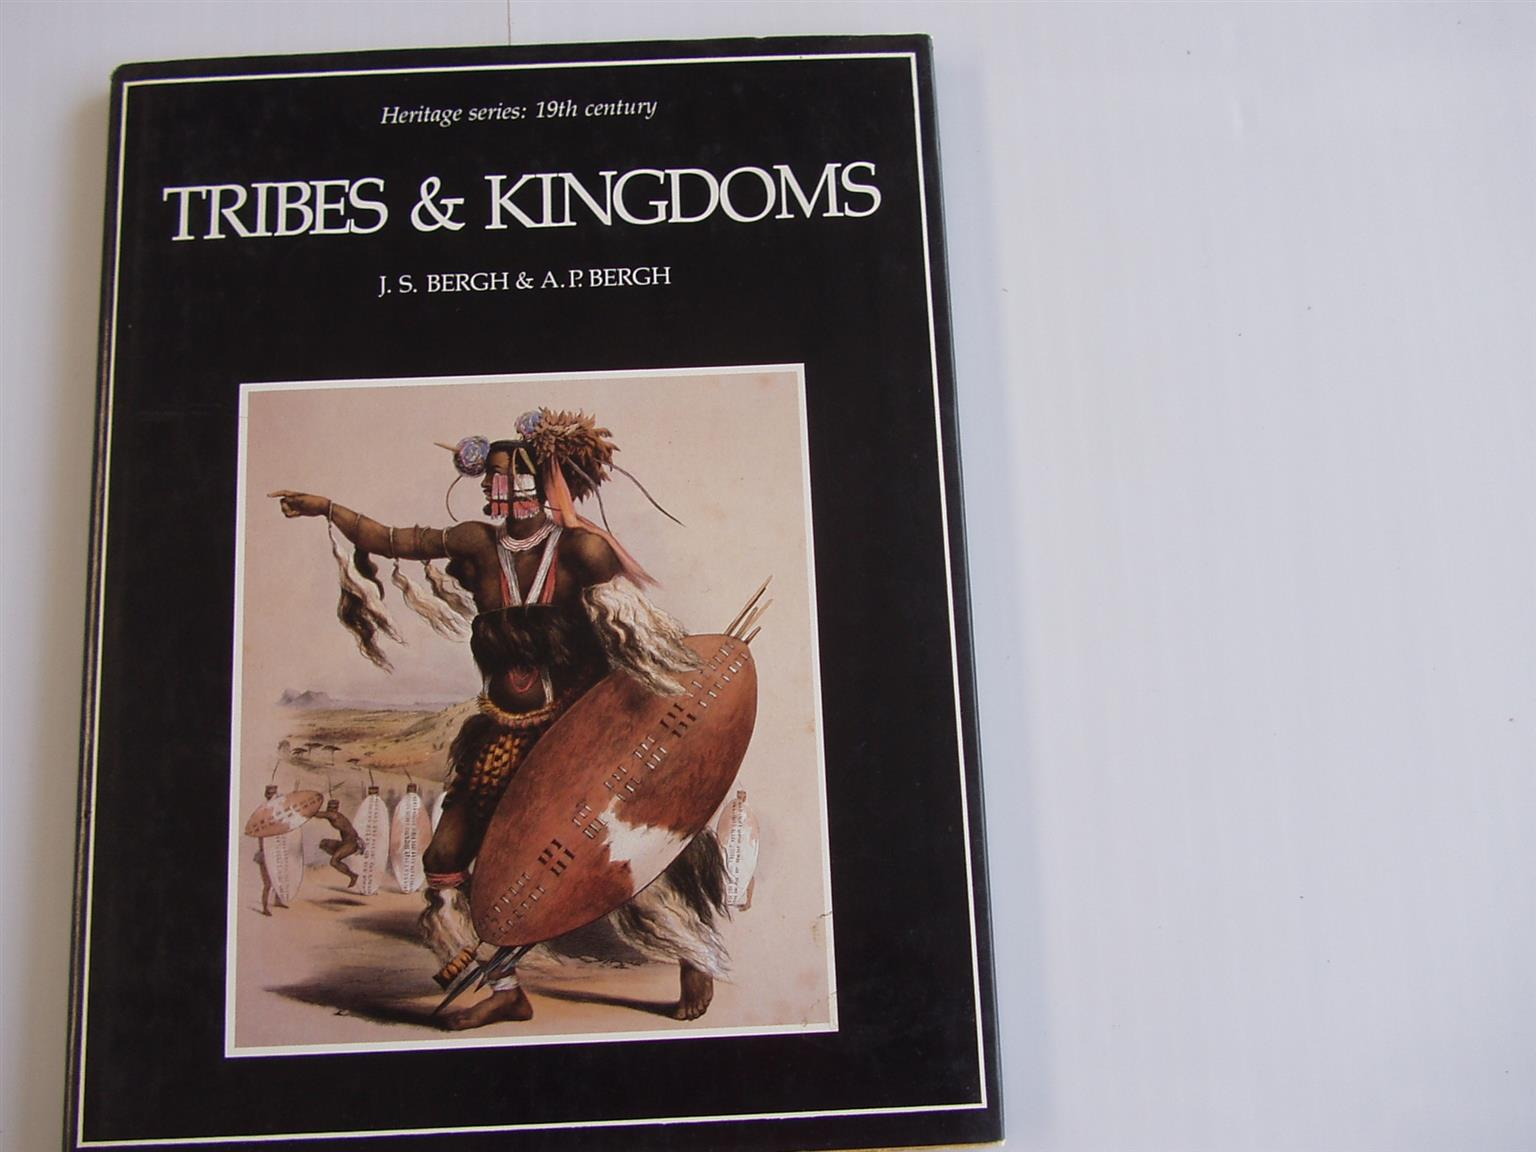 Tribes & Kingdoms by J. S. Bergh and A. P. Bergh (1984, Book, Illustrated) -Hard Cover